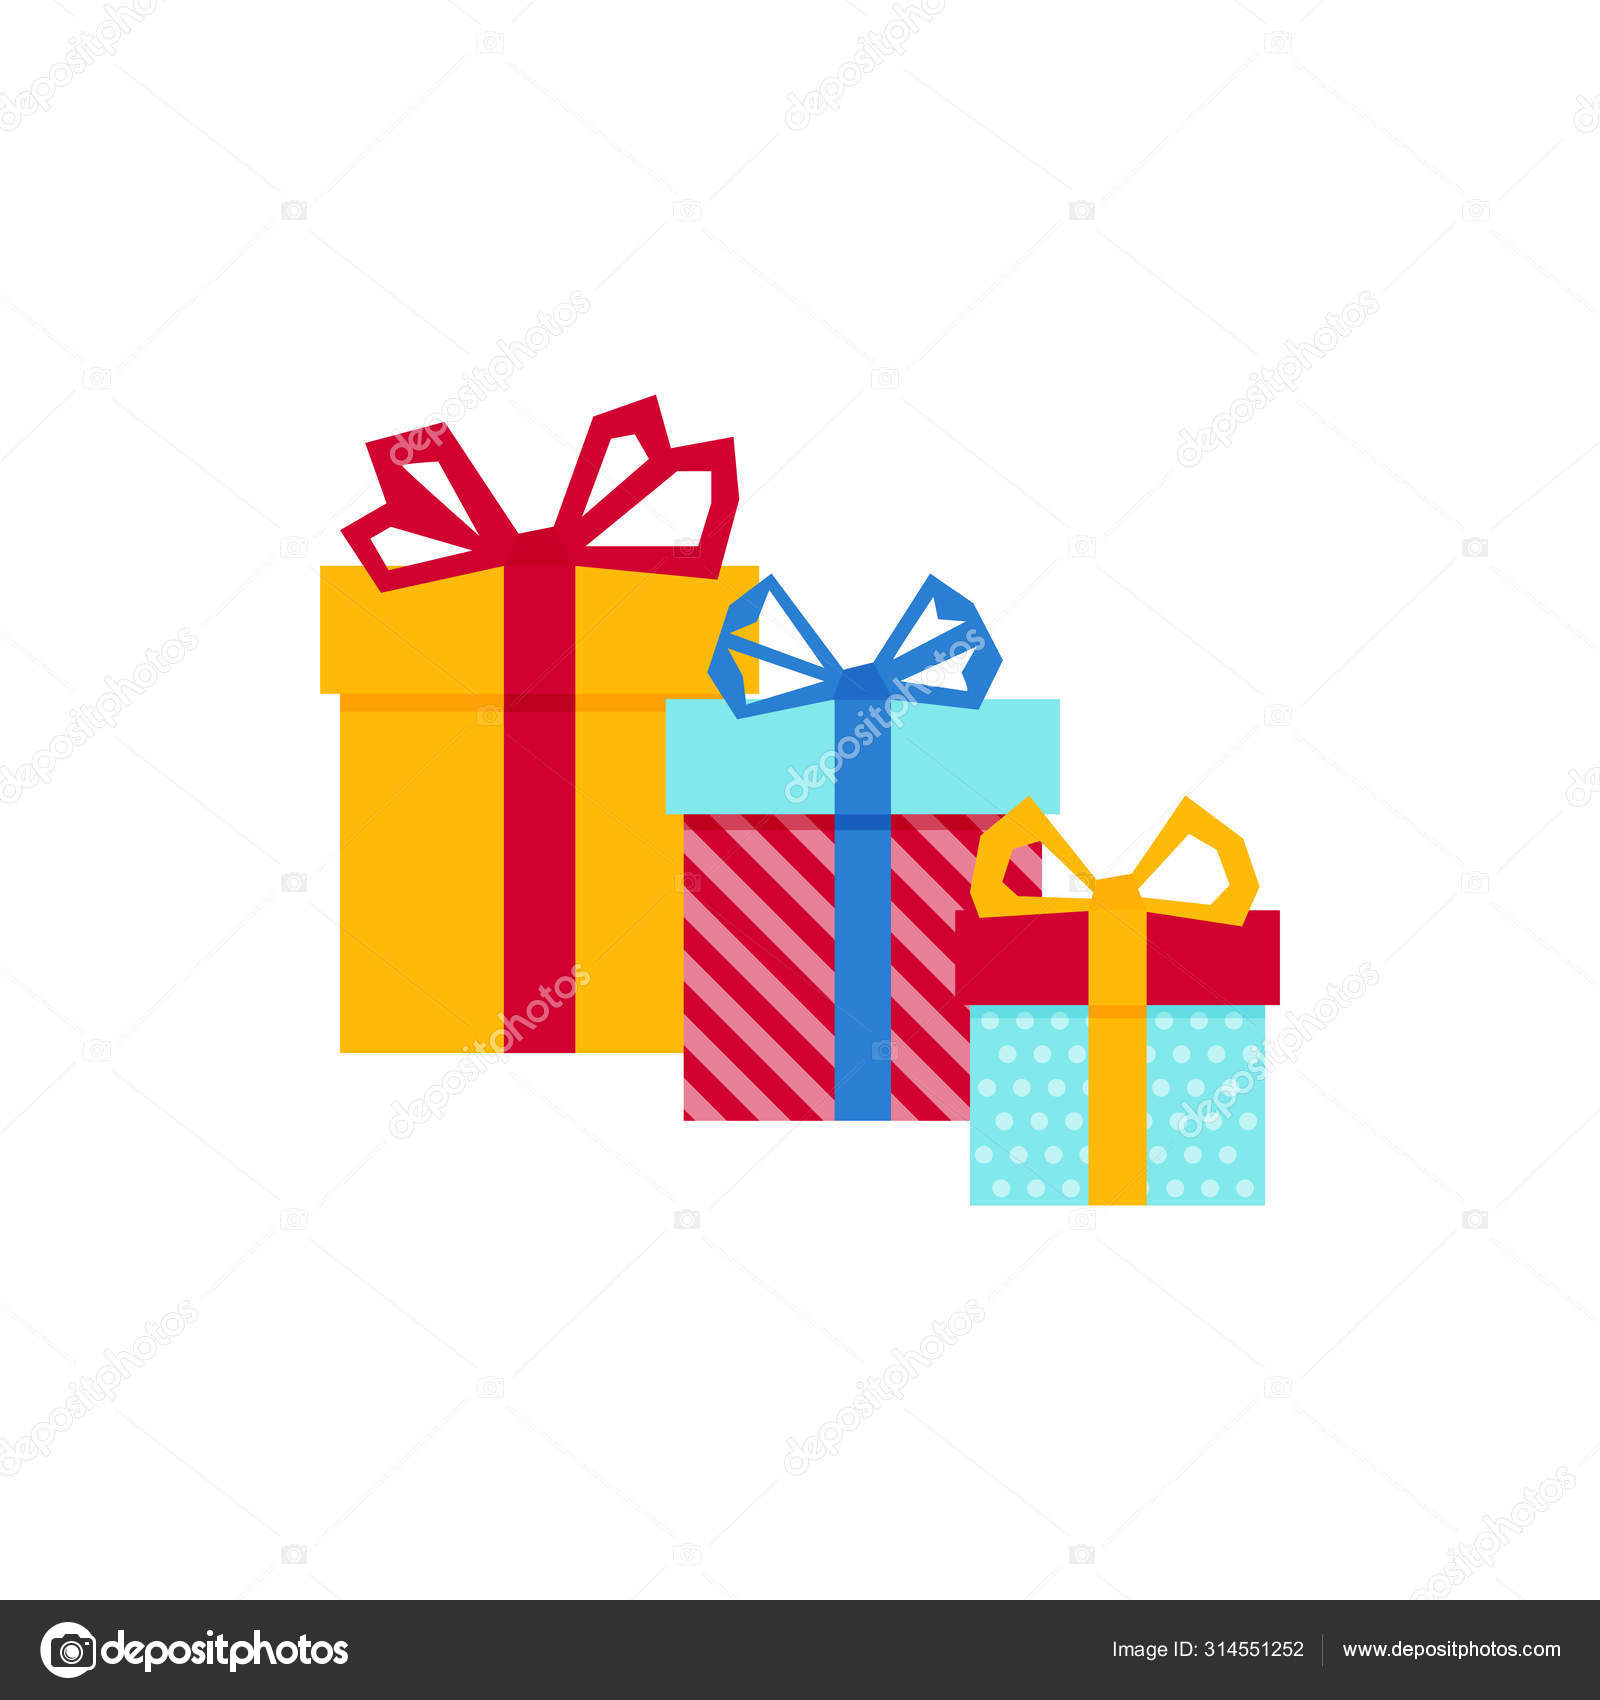 Set With Gift For Any Design Colorful Blank Cardboard Package Box Product Packaging White Background Surprise Symbol Gift Box Vector Design Template Holiday Background Christmas Vector Vector Image By C